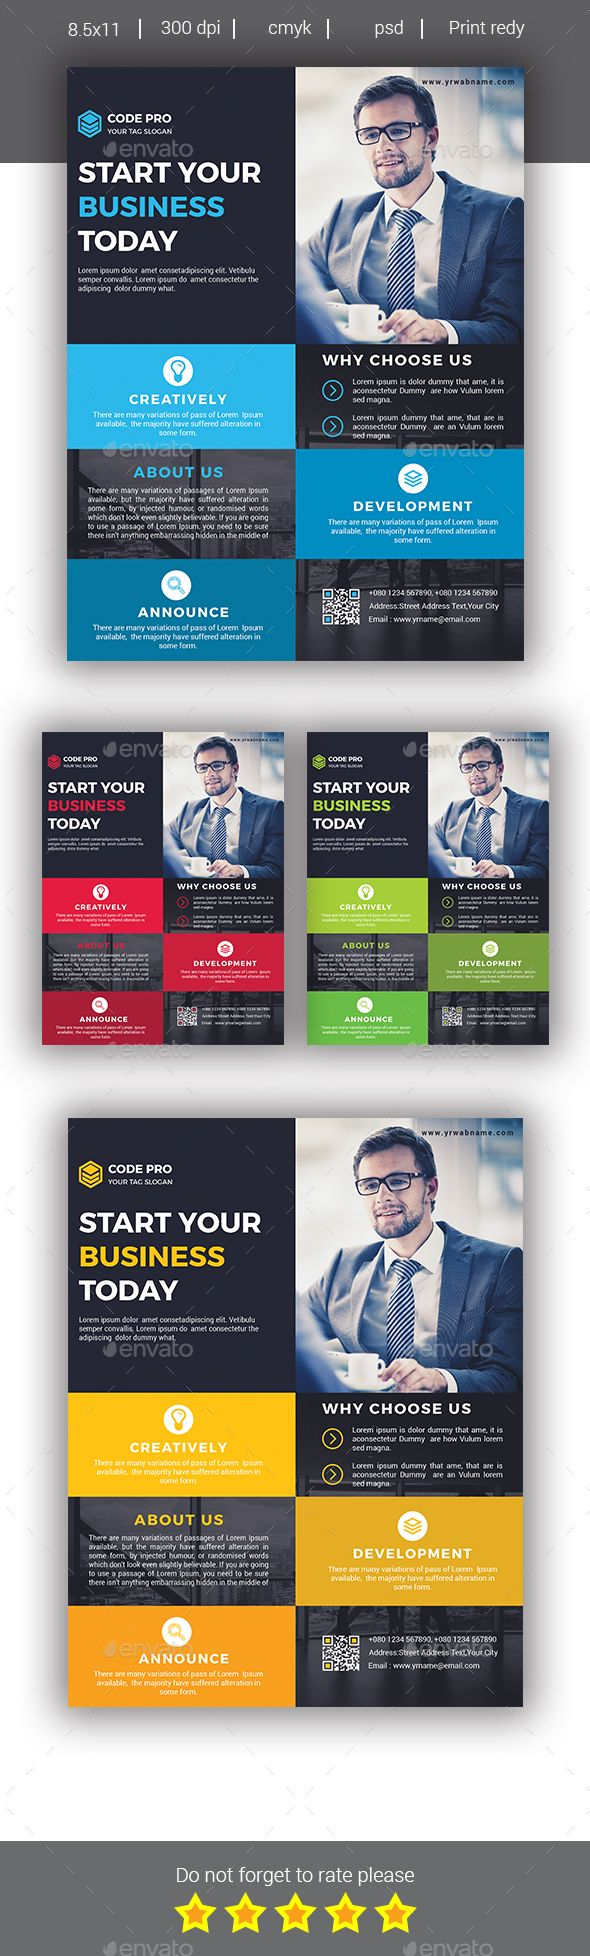 Corporate Business Flyer Template PSD. Download here: https://graphicriver.net/item/corporate-business-flyer/17435763?ref=ksioks